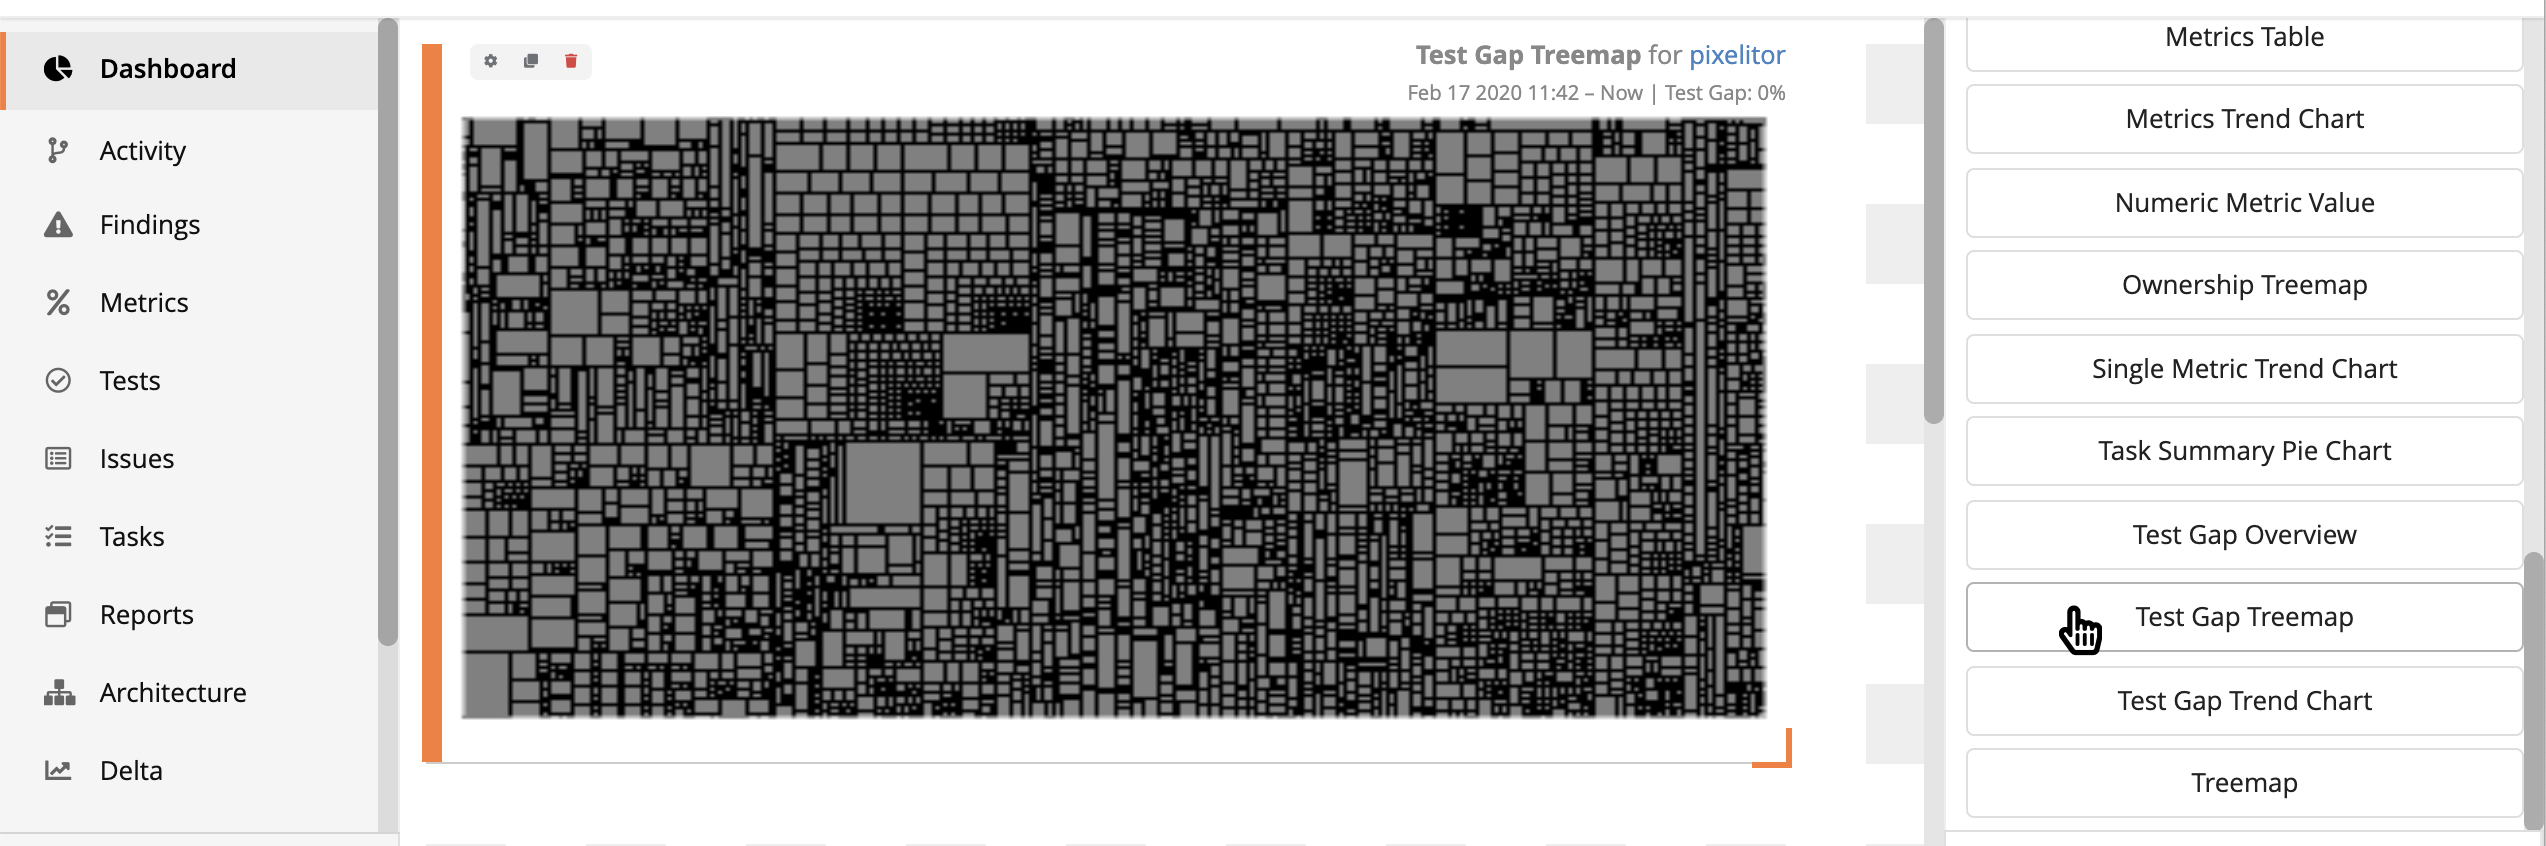 Adding a Dashboard with a Test Gap Treemap